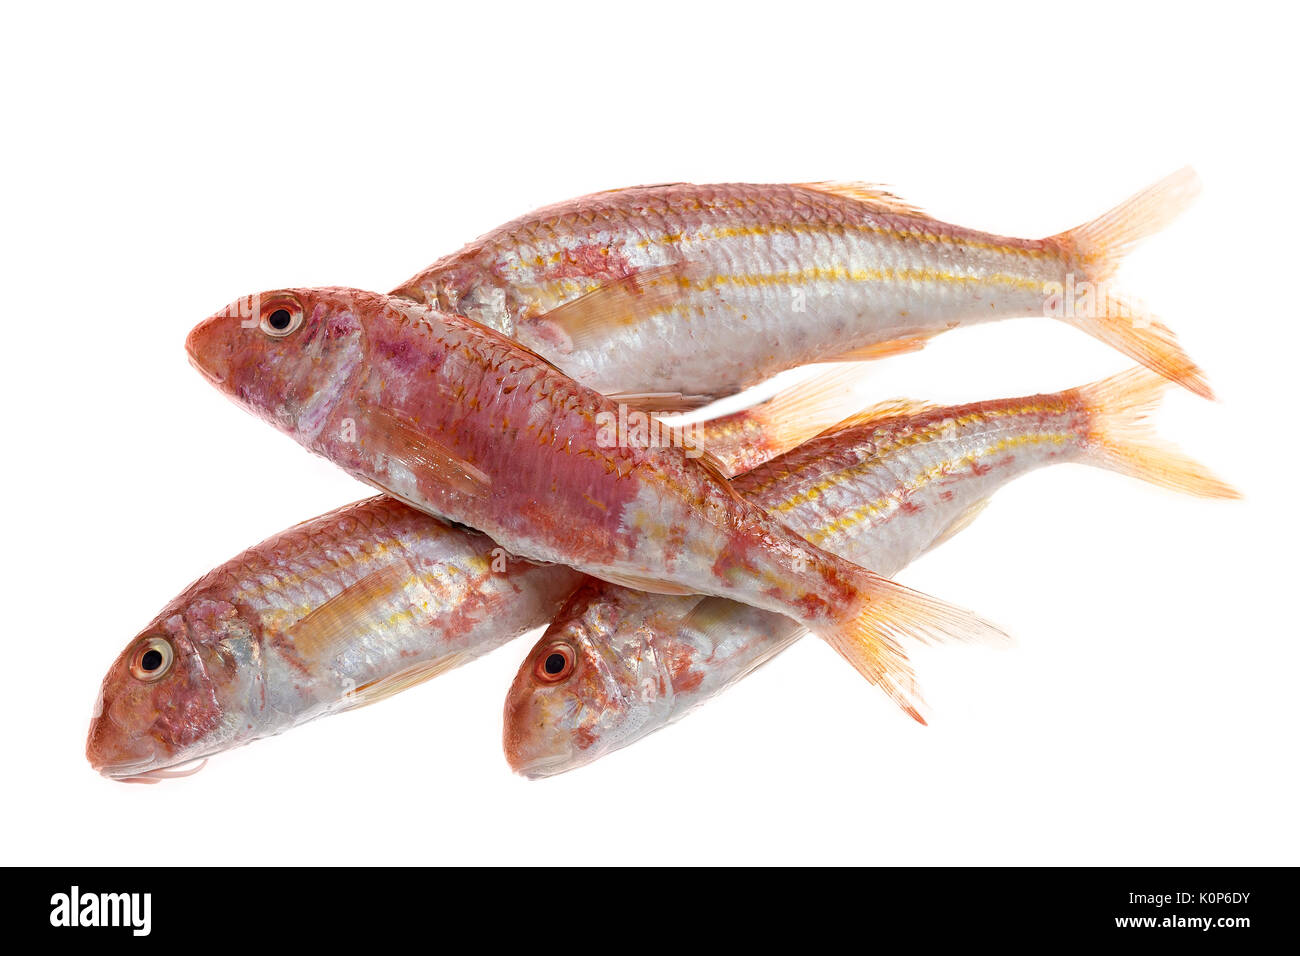 Barb fish stock photos barb fish stock images alamy for Red mullet fish